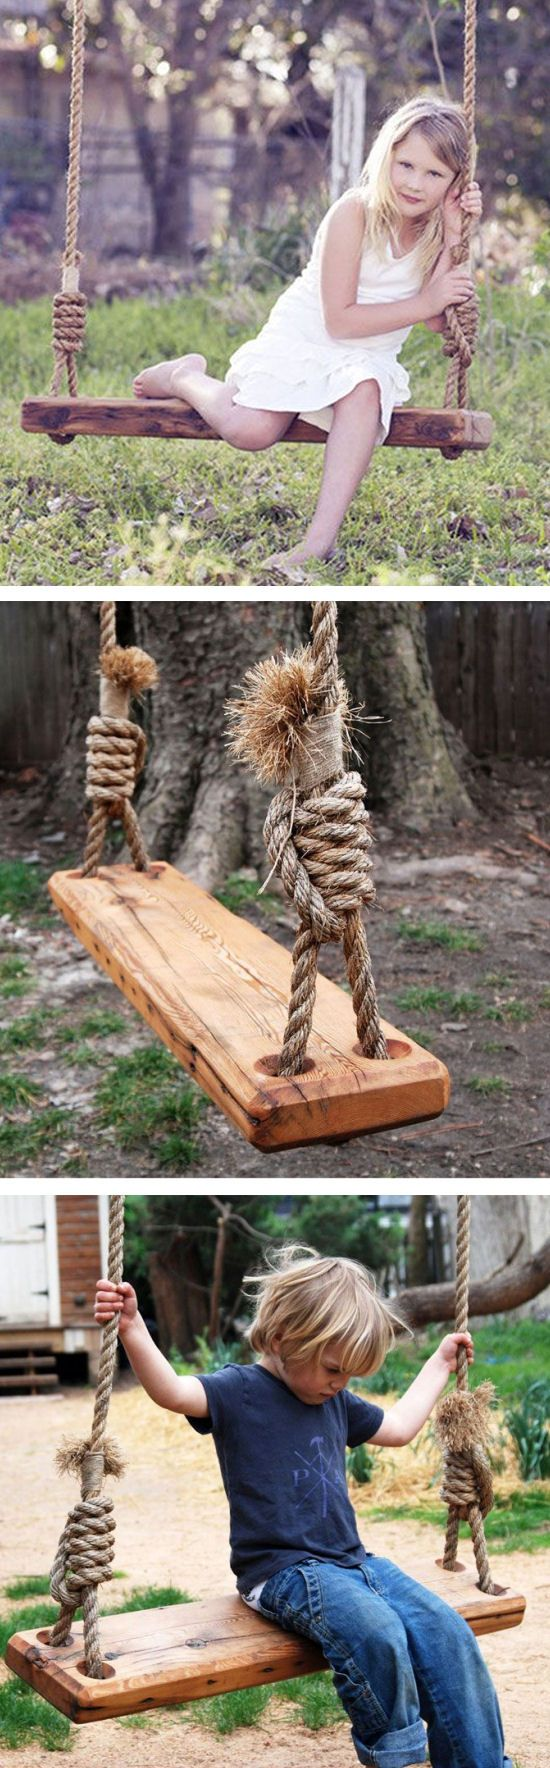 Here's a great way to recycle: repurpose a pine floor joist from a 19th-century house as the perfect swing for your yard.